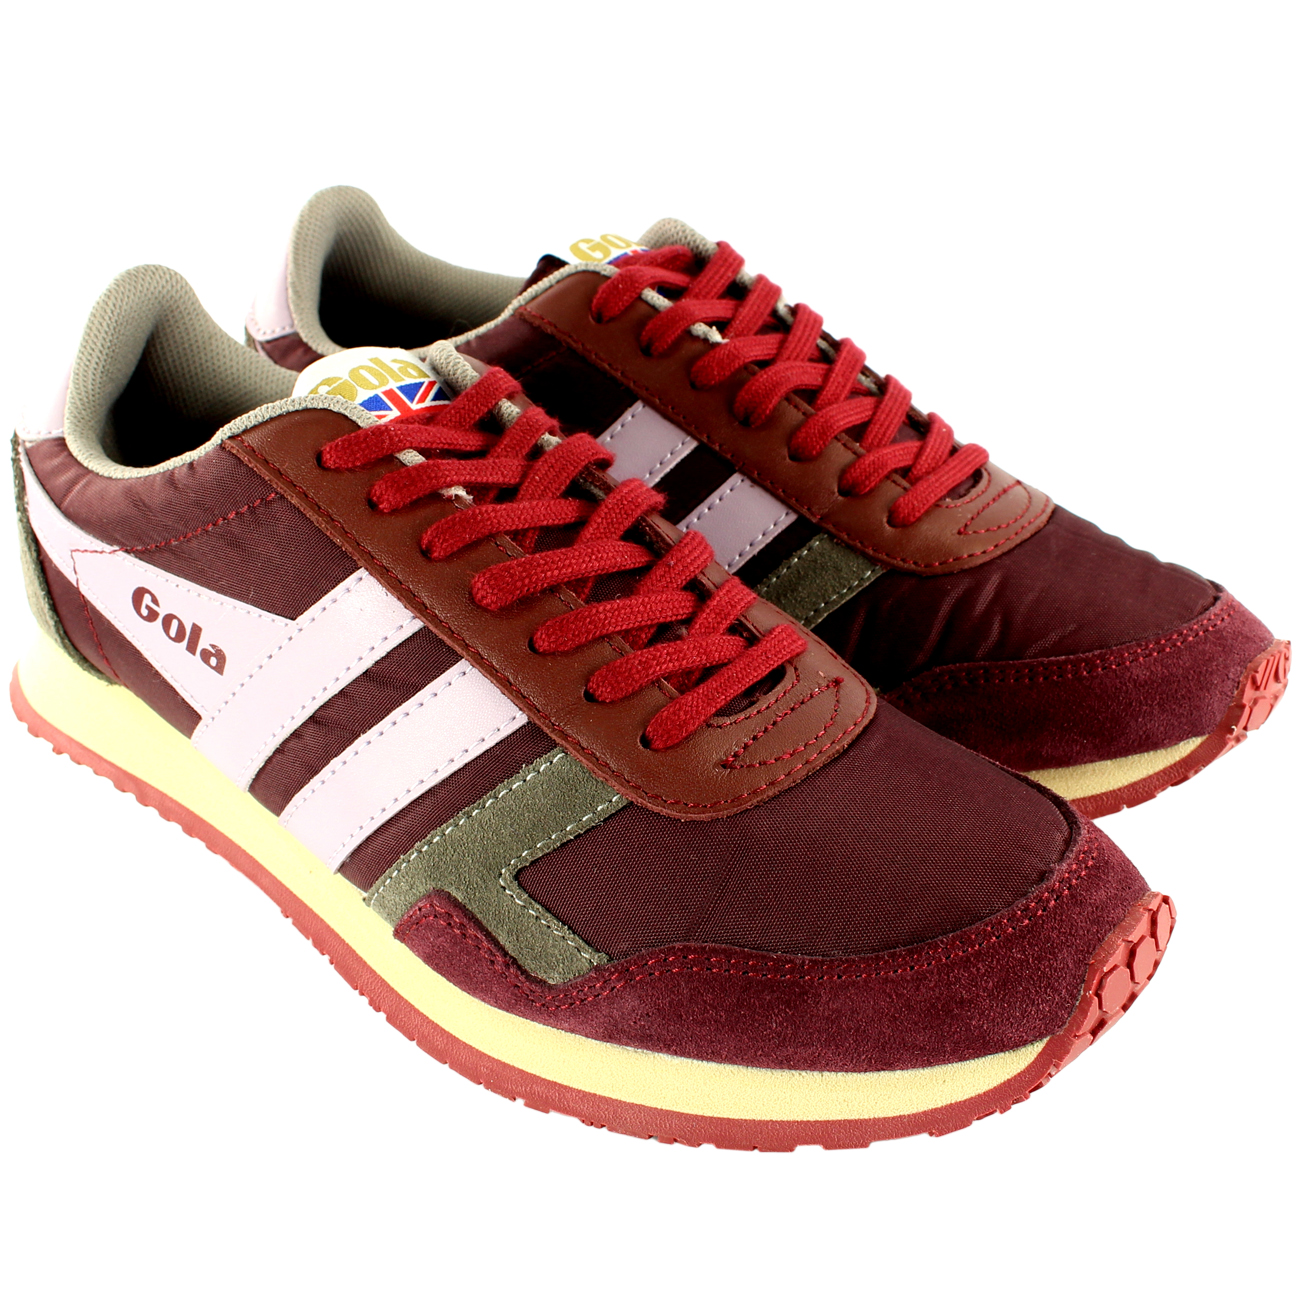 Gola Spirit Running Trainers